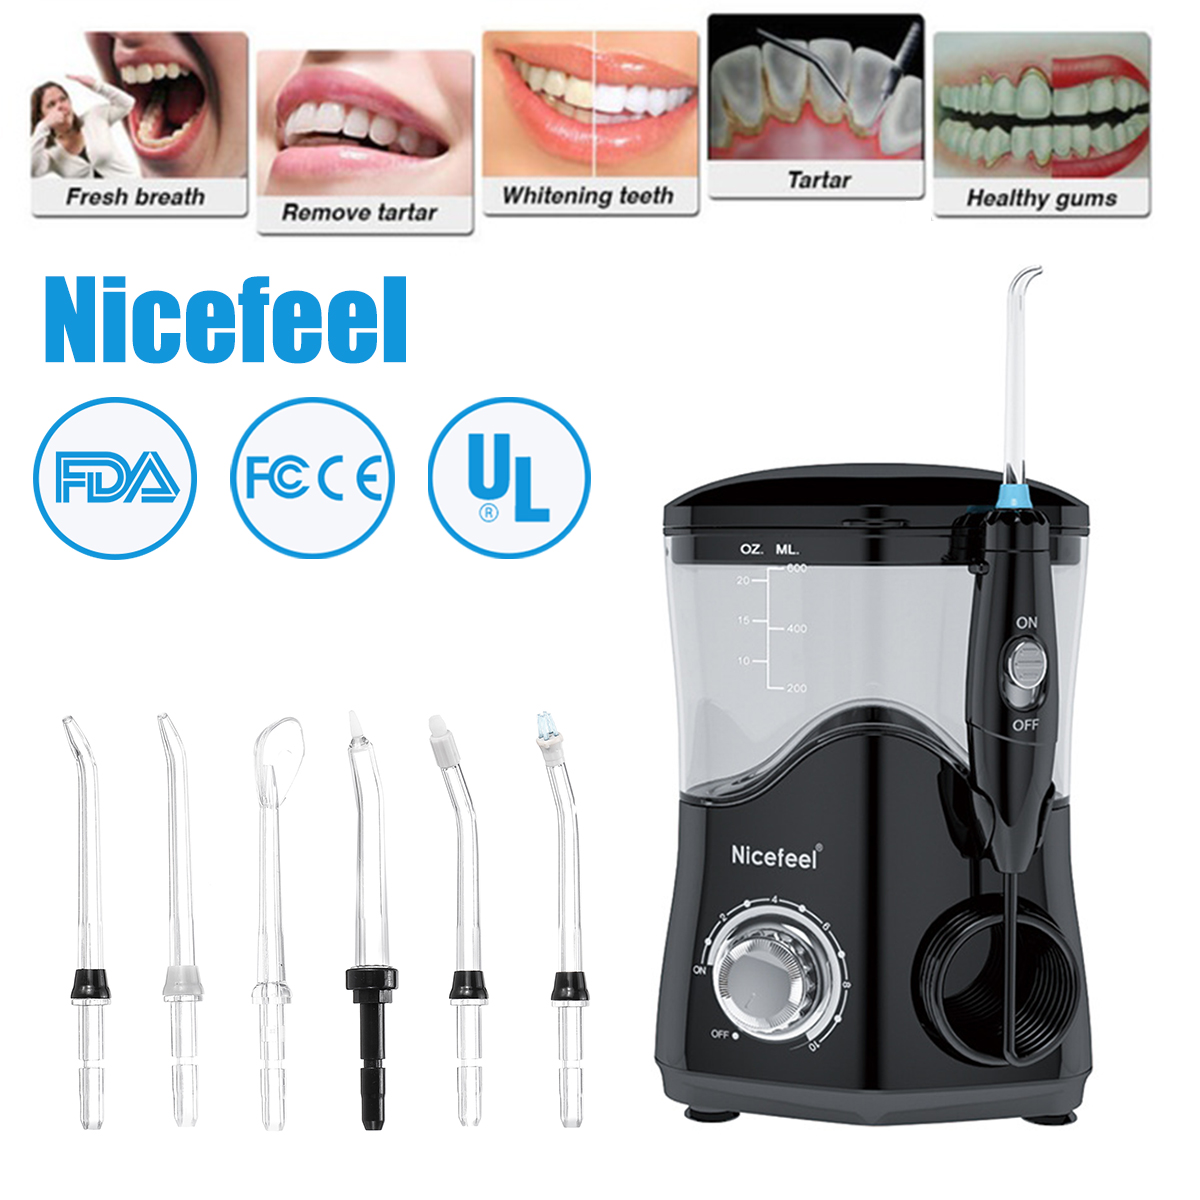 Nicefeel 7 Nozzle Toothbrushing Irrigator Oral Irrigator Dental Water Pulse Tooth Irrigator Water Jet For Brushing Teeth Clean